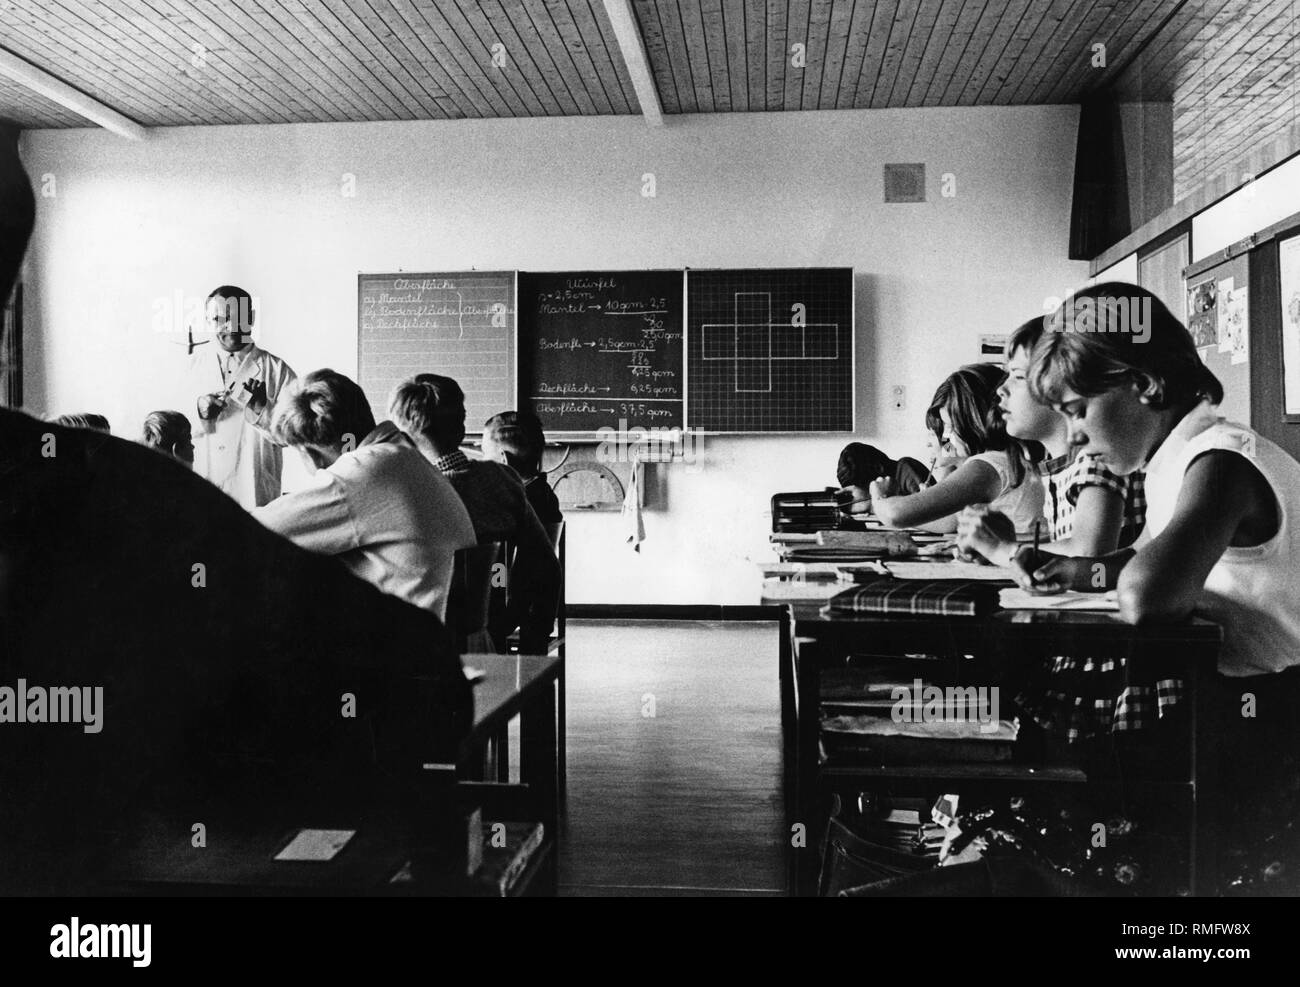 Children in school: Picture shows teacher with children of the 8. class Hauptschule (Secondary modern school) during a lesson. - Stock Image